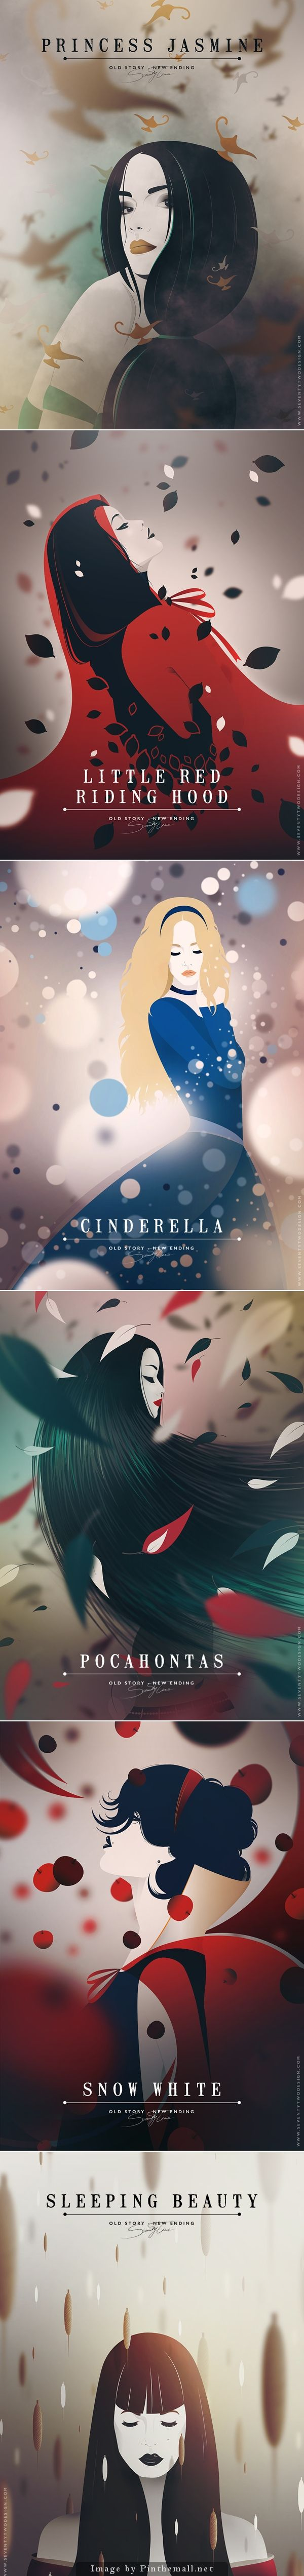 Disney: old story - new ending illustrations by Seventy Two